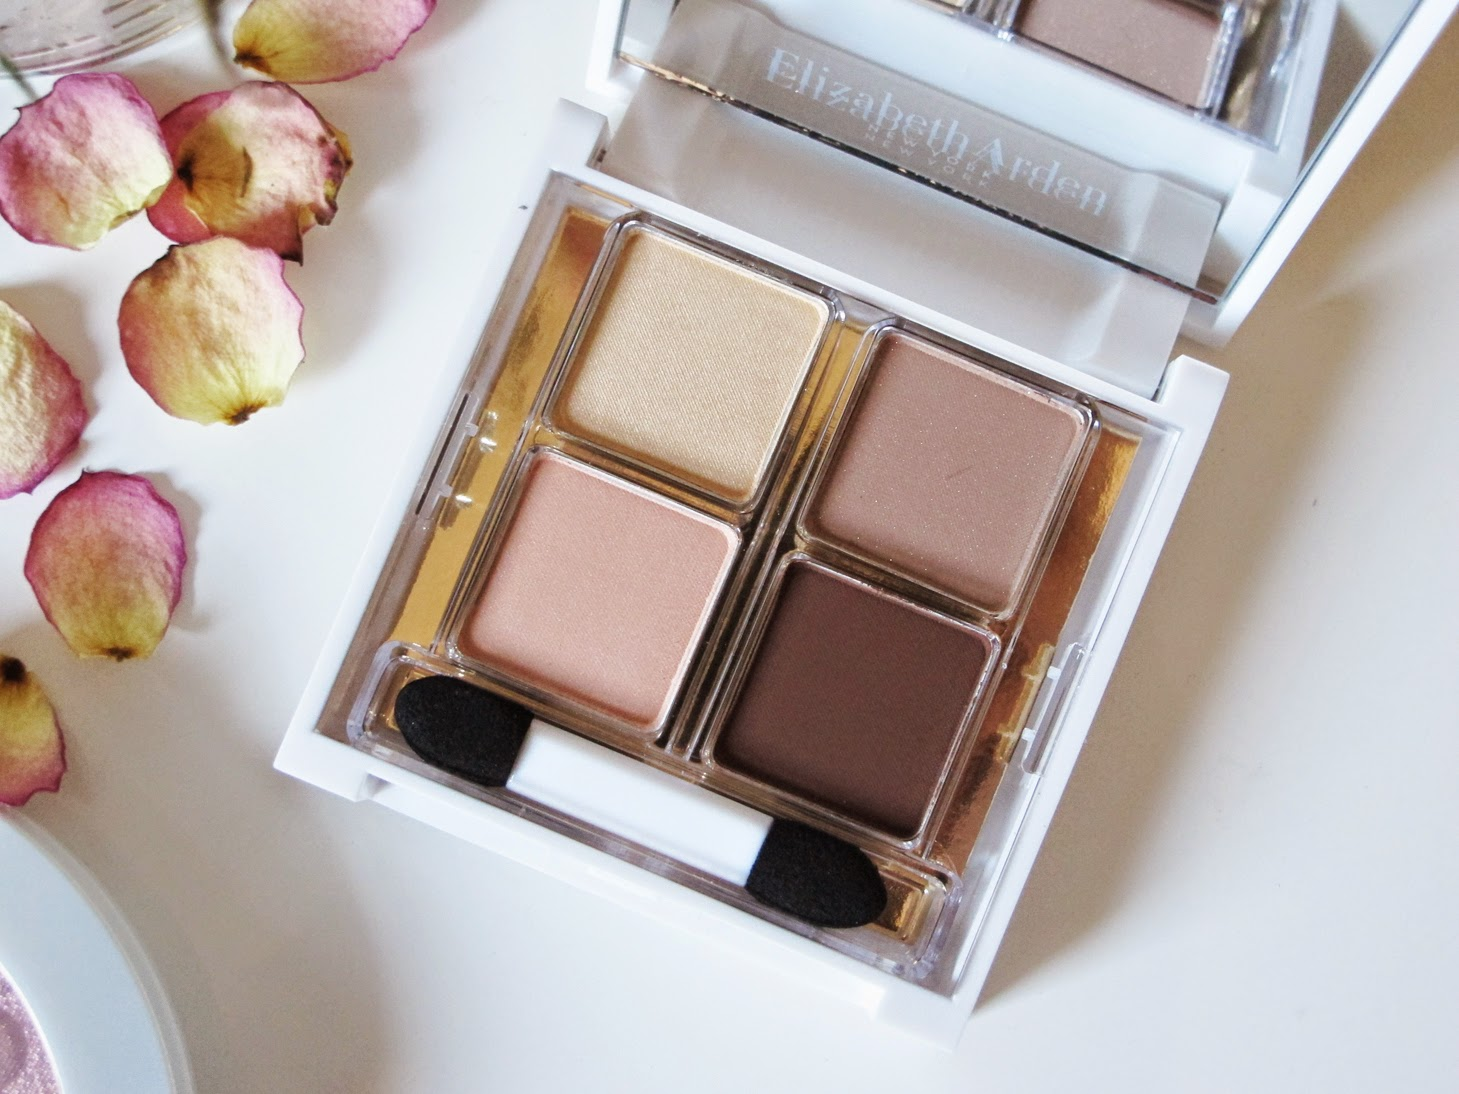 Elizabeth Arden Chic Browns